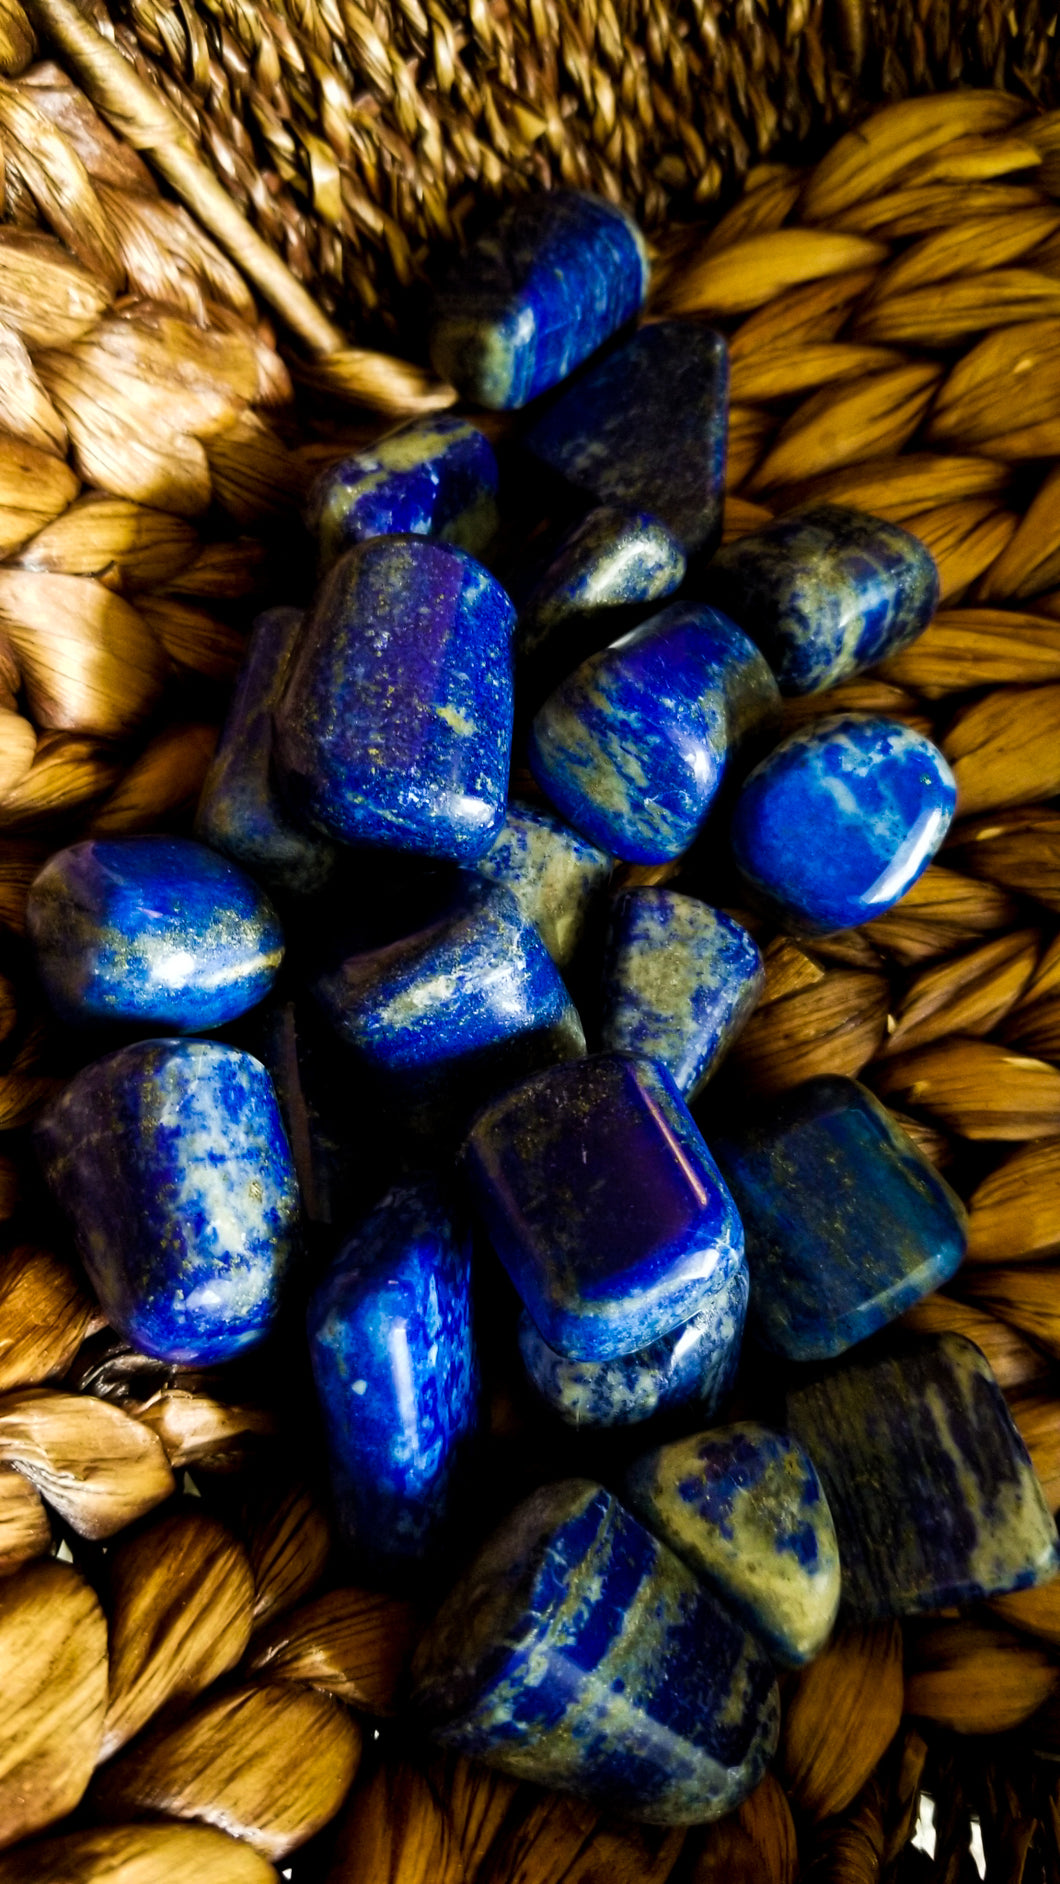 Lapis Lazuli Crystal Tumble || Pyrite Inclusions